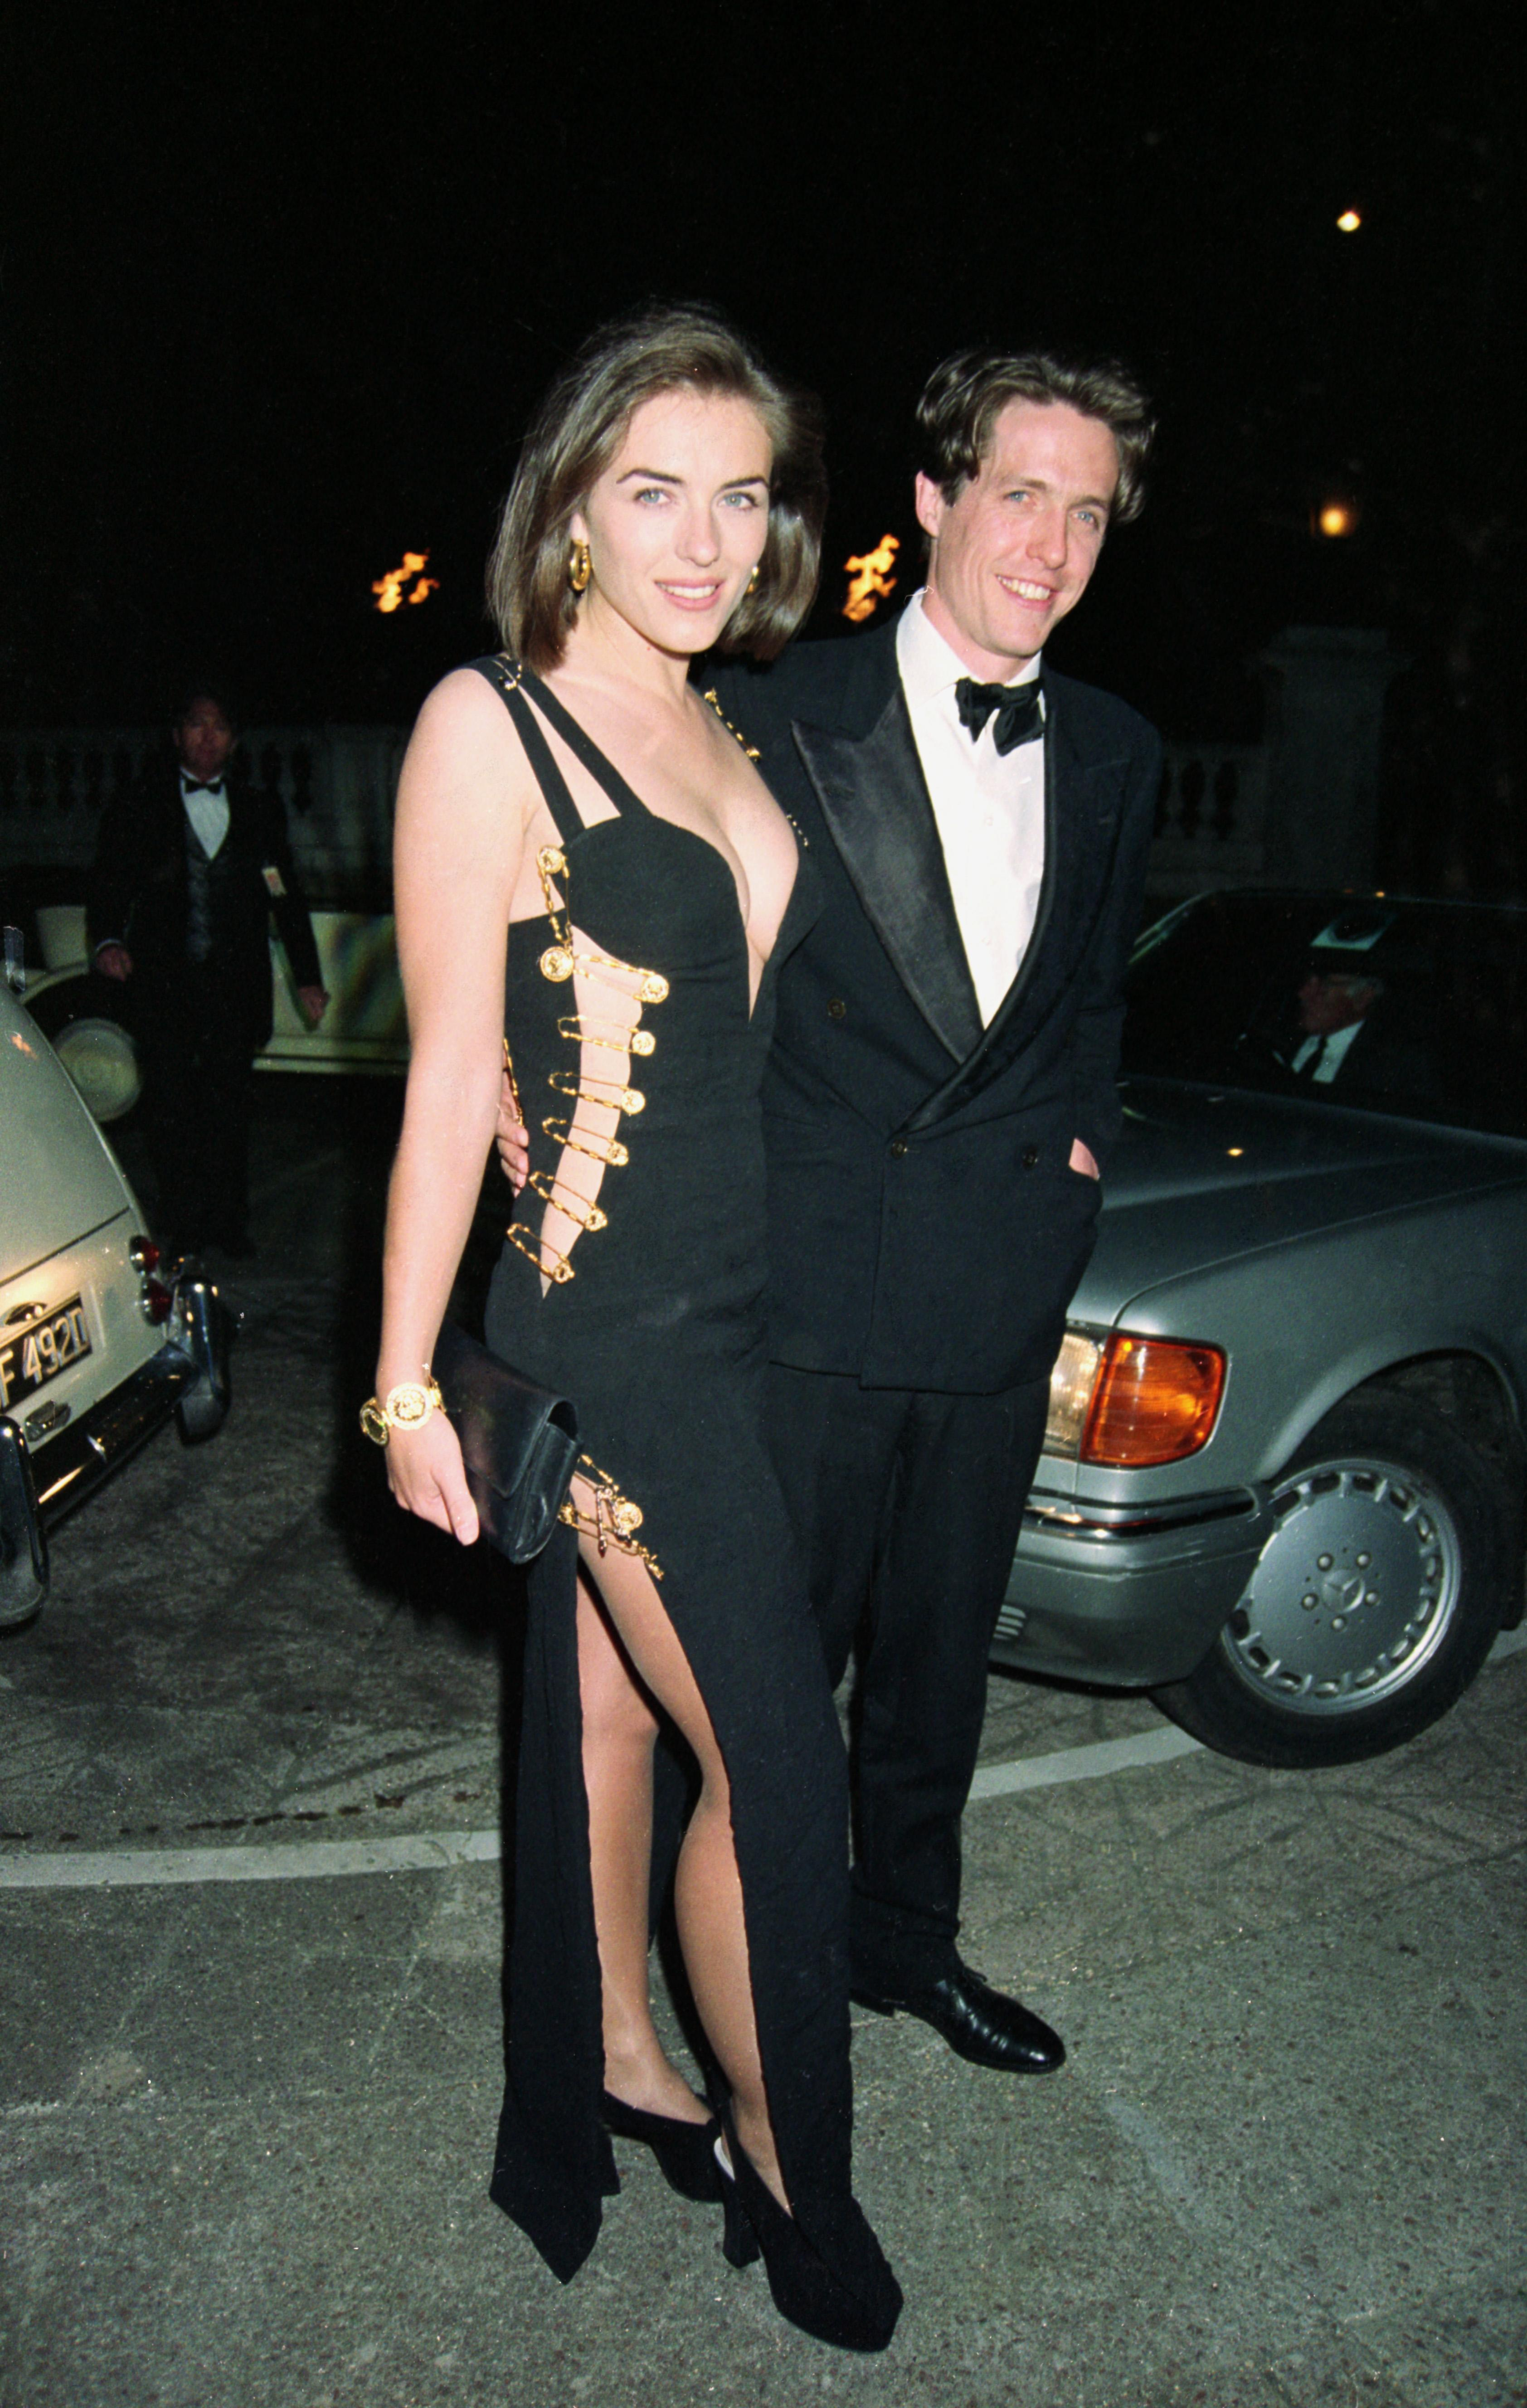 """<p>This dress grabbed many people's attention as it was seemingly only held together by <a rel=""""nofollow"""" href=""""https://en.wikipedia.org/wiki/Black_Versace_dress_of_Elizabeth_Hurley"""">safety pins</a>. </p>"""